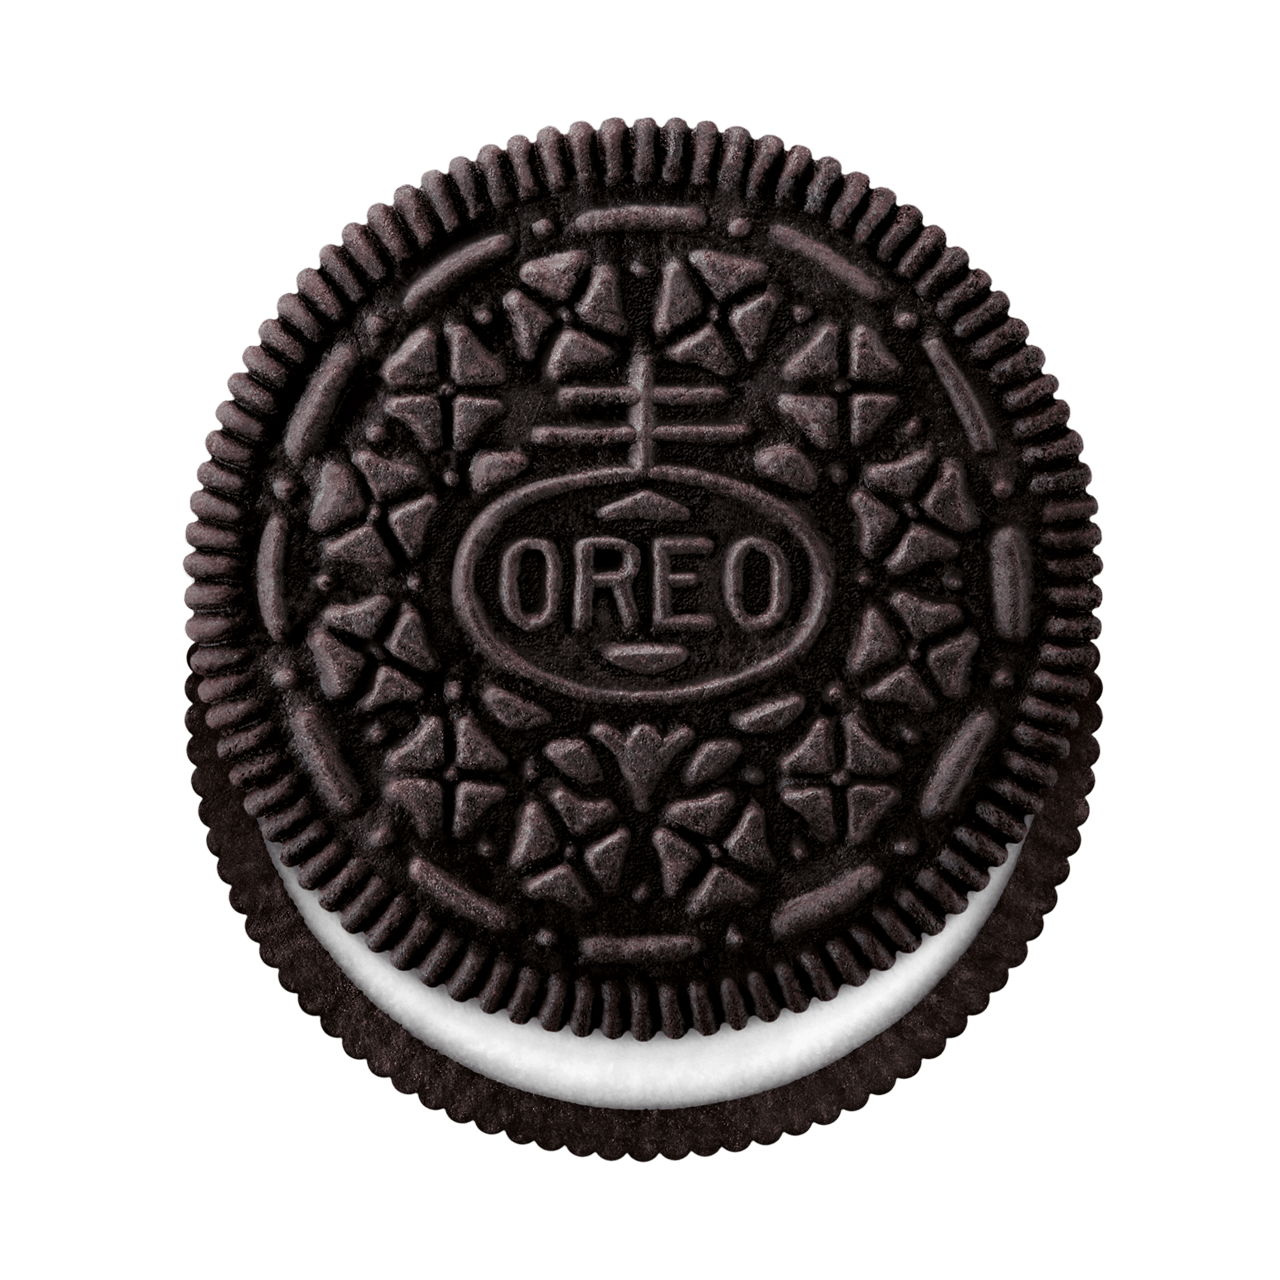 clip royalty free library Oreo Top View transparent PNG